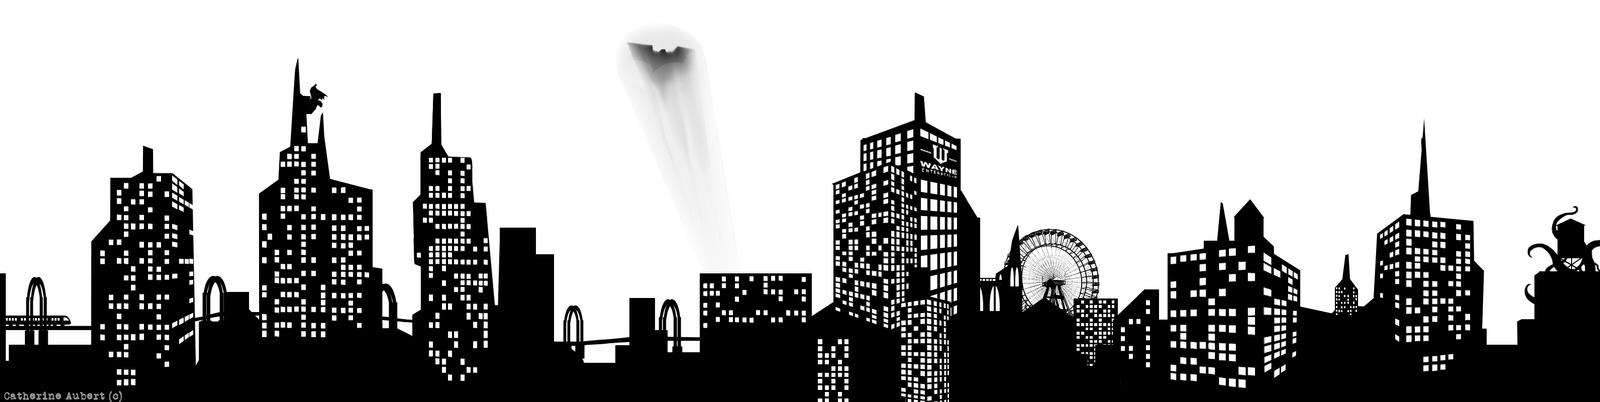 pictures of gotham city skyline clip art rock cafe